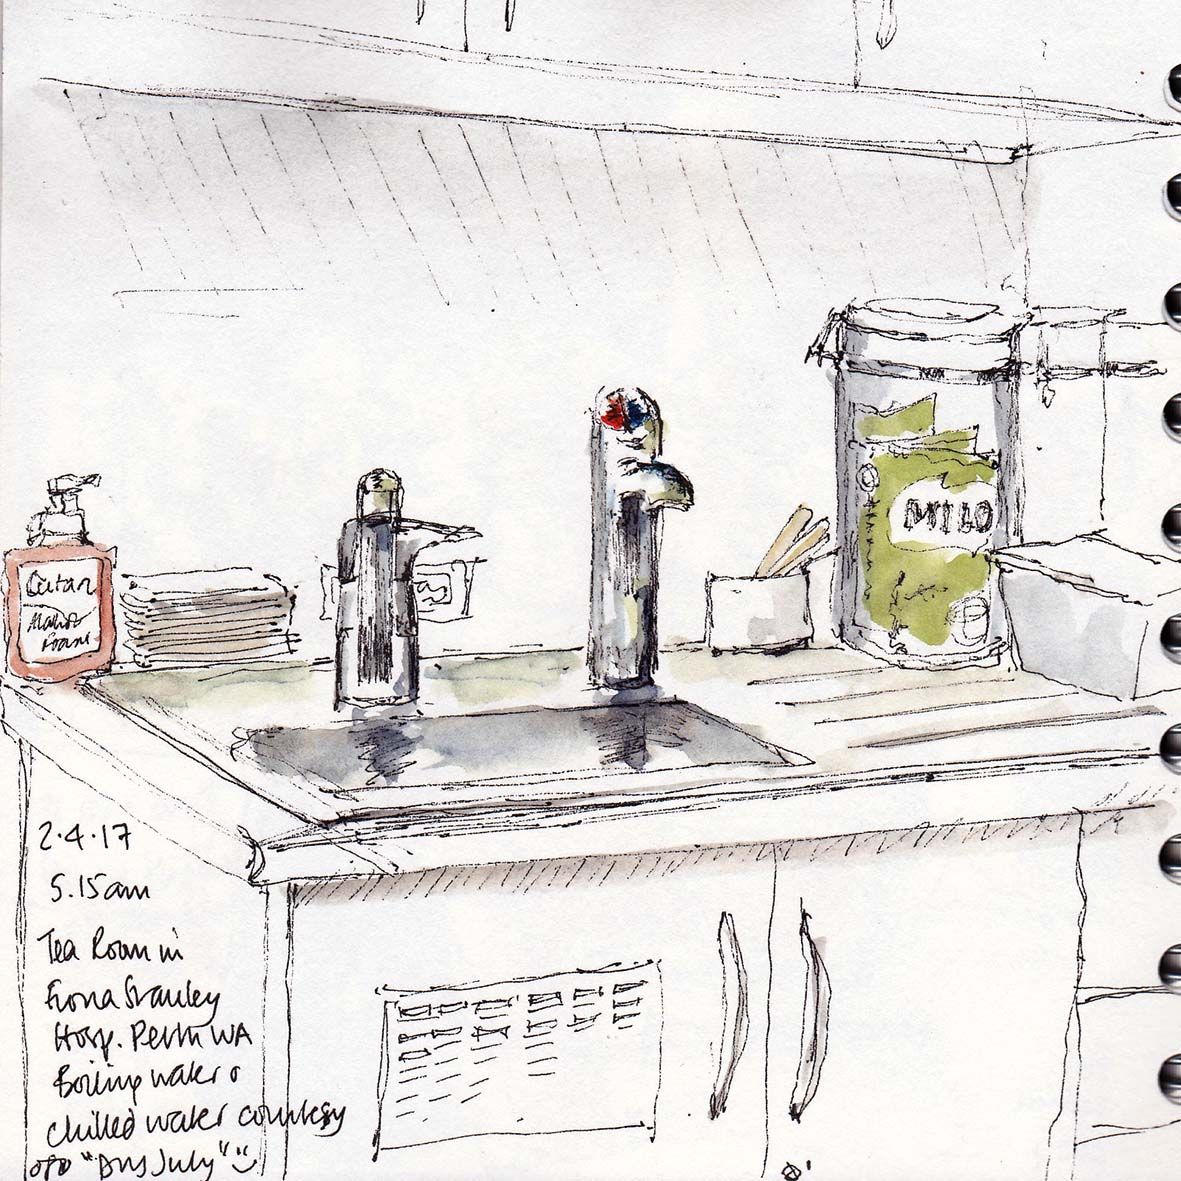 sketch of visitor room fiona stanley hospital